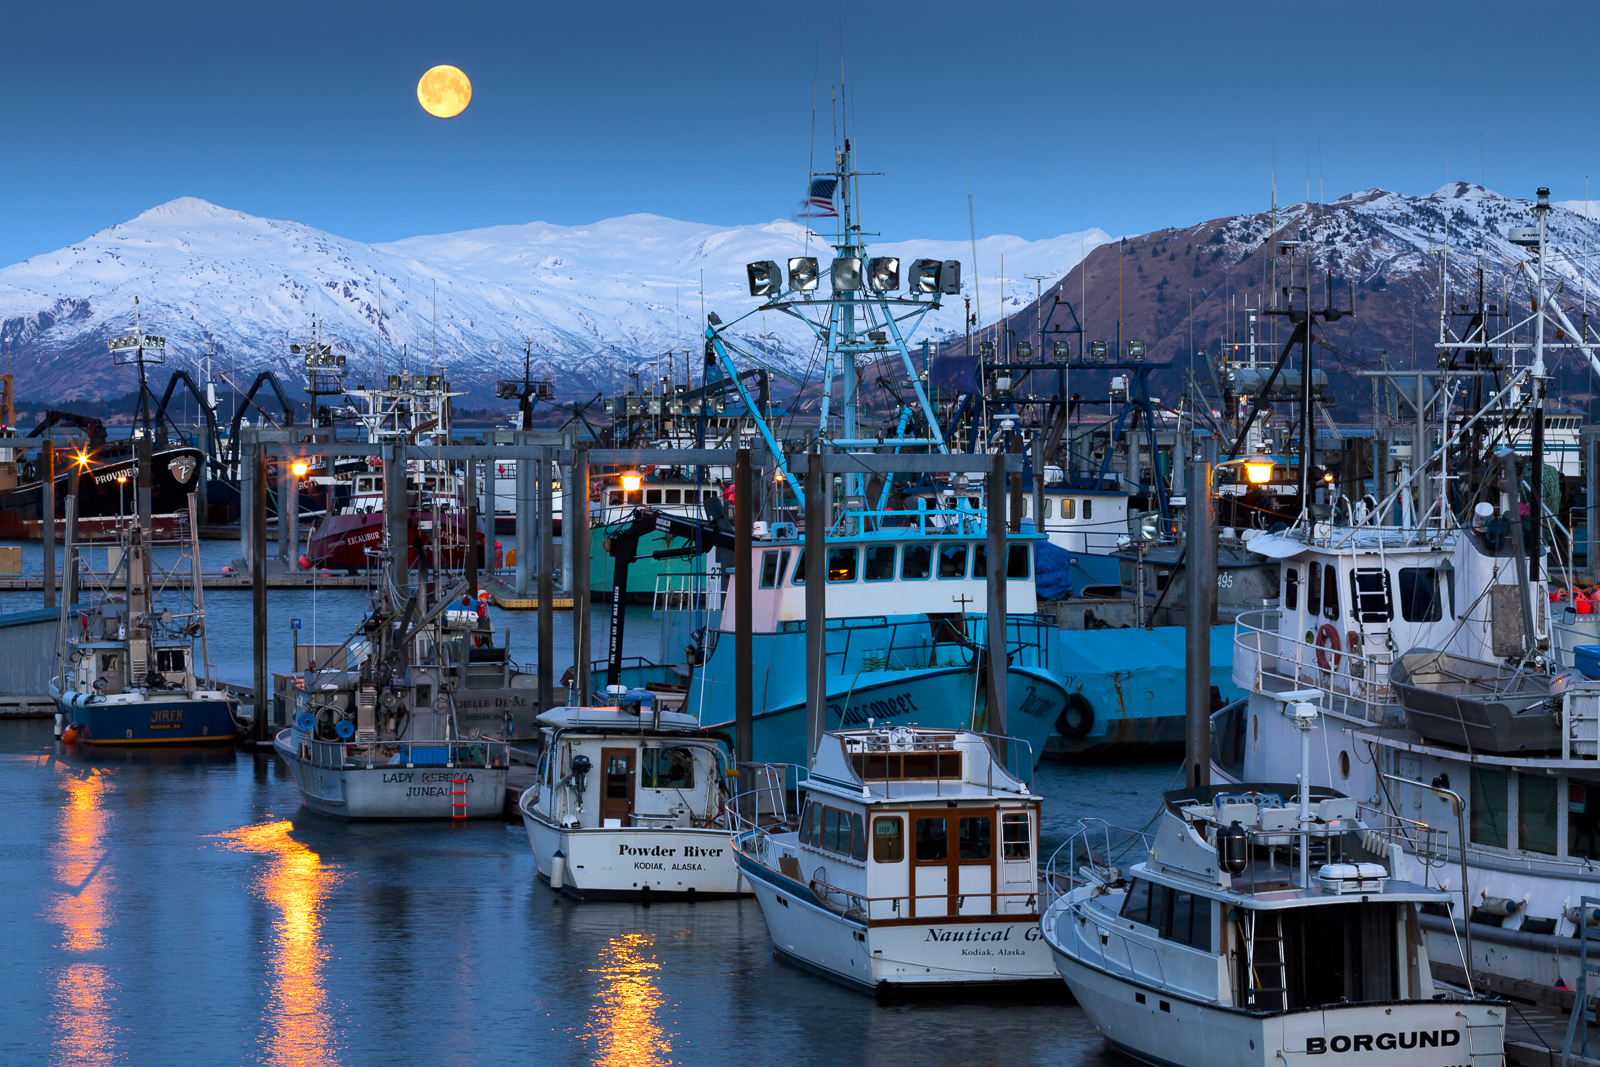 Kodiak, Alaska, moon, full moon, moonrise